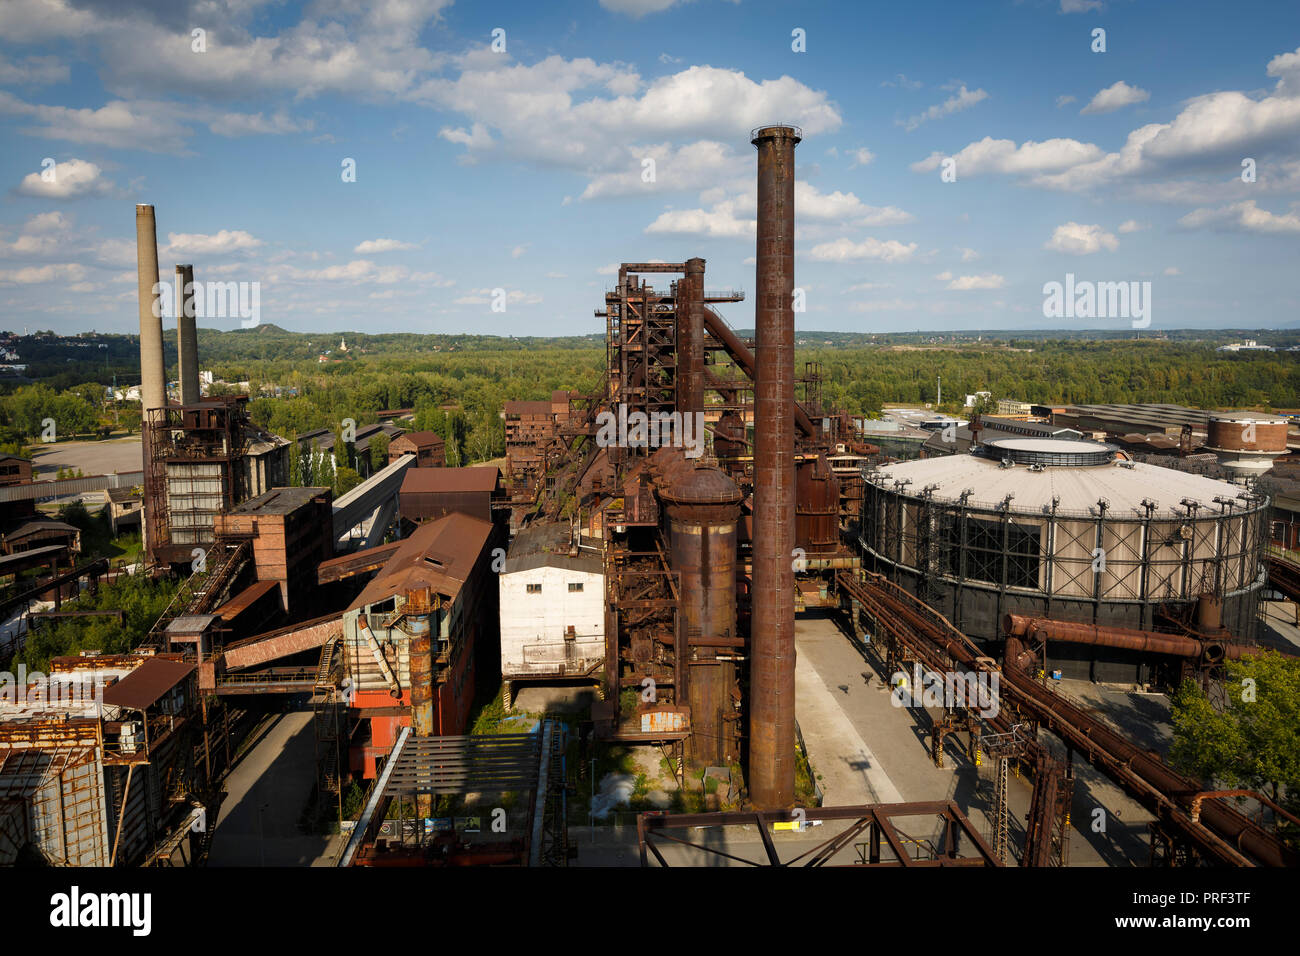 Ostrava, Czech Republic - August 21, 2018: View of Lower Vitkovice, a national site of industrial heritage consisting of a unique collection of indust - Stock Image